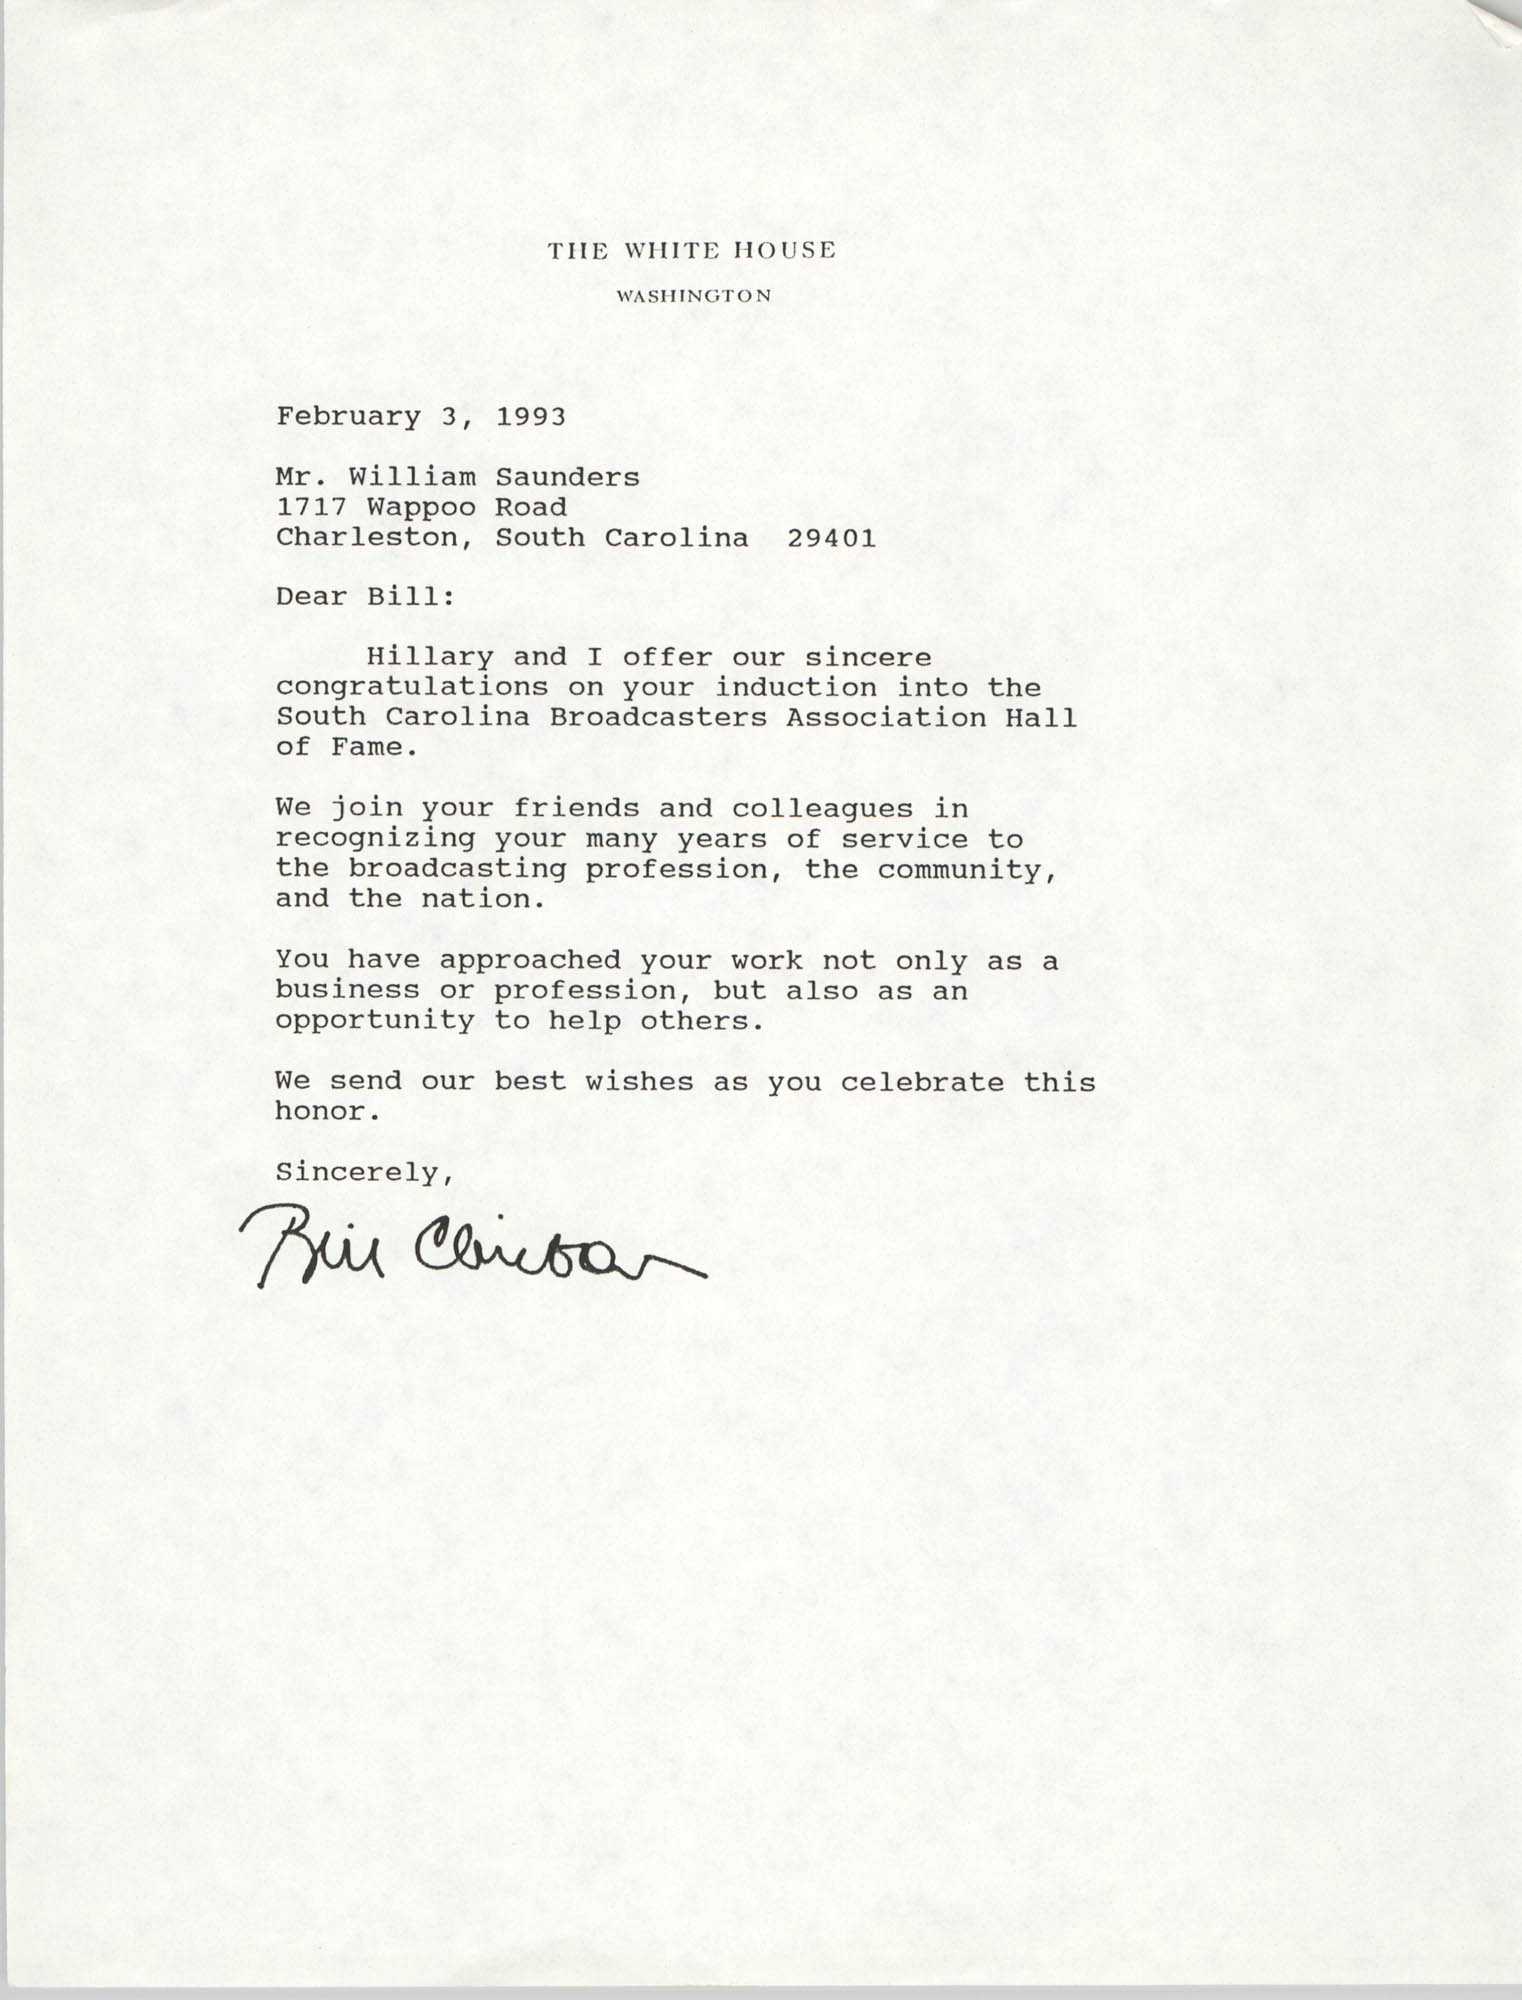 Letter from Bill Clinton to William Saunders, February 3, 1993